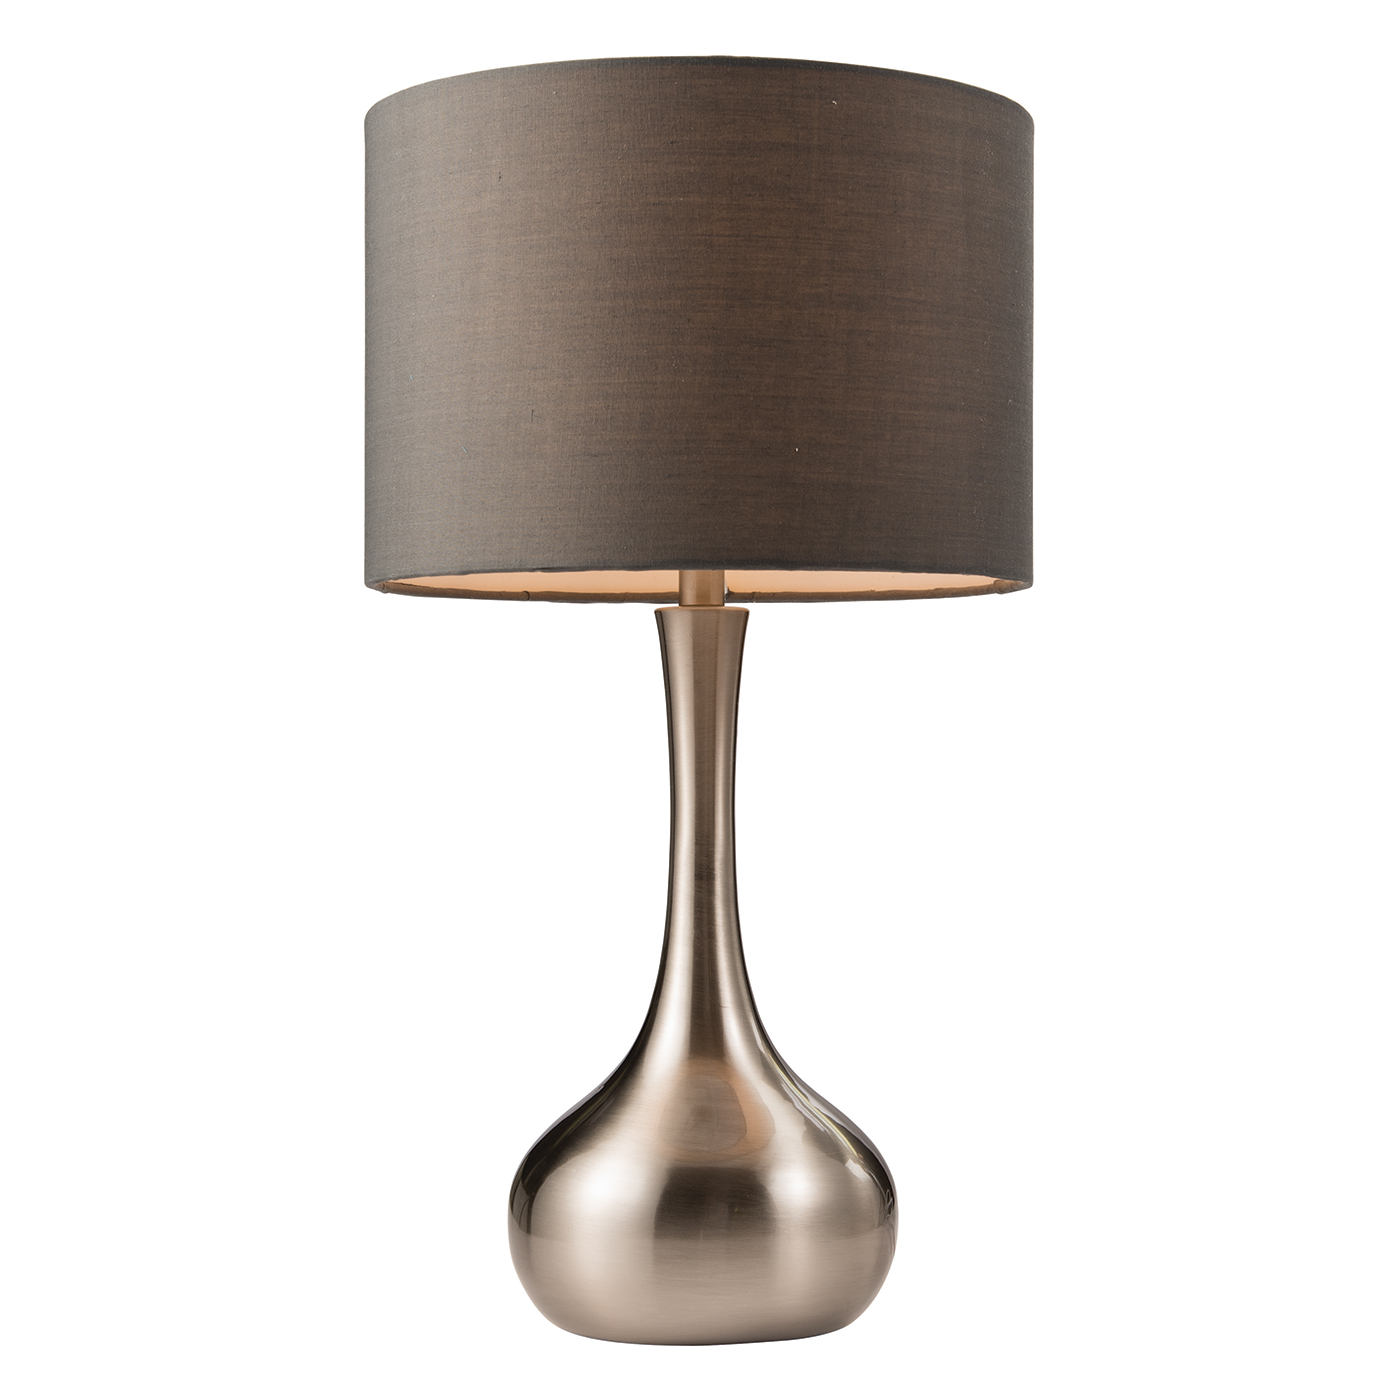 Endon Piccadilly touch table lamp 40W Satin nickel plate & dark grey tc fabric